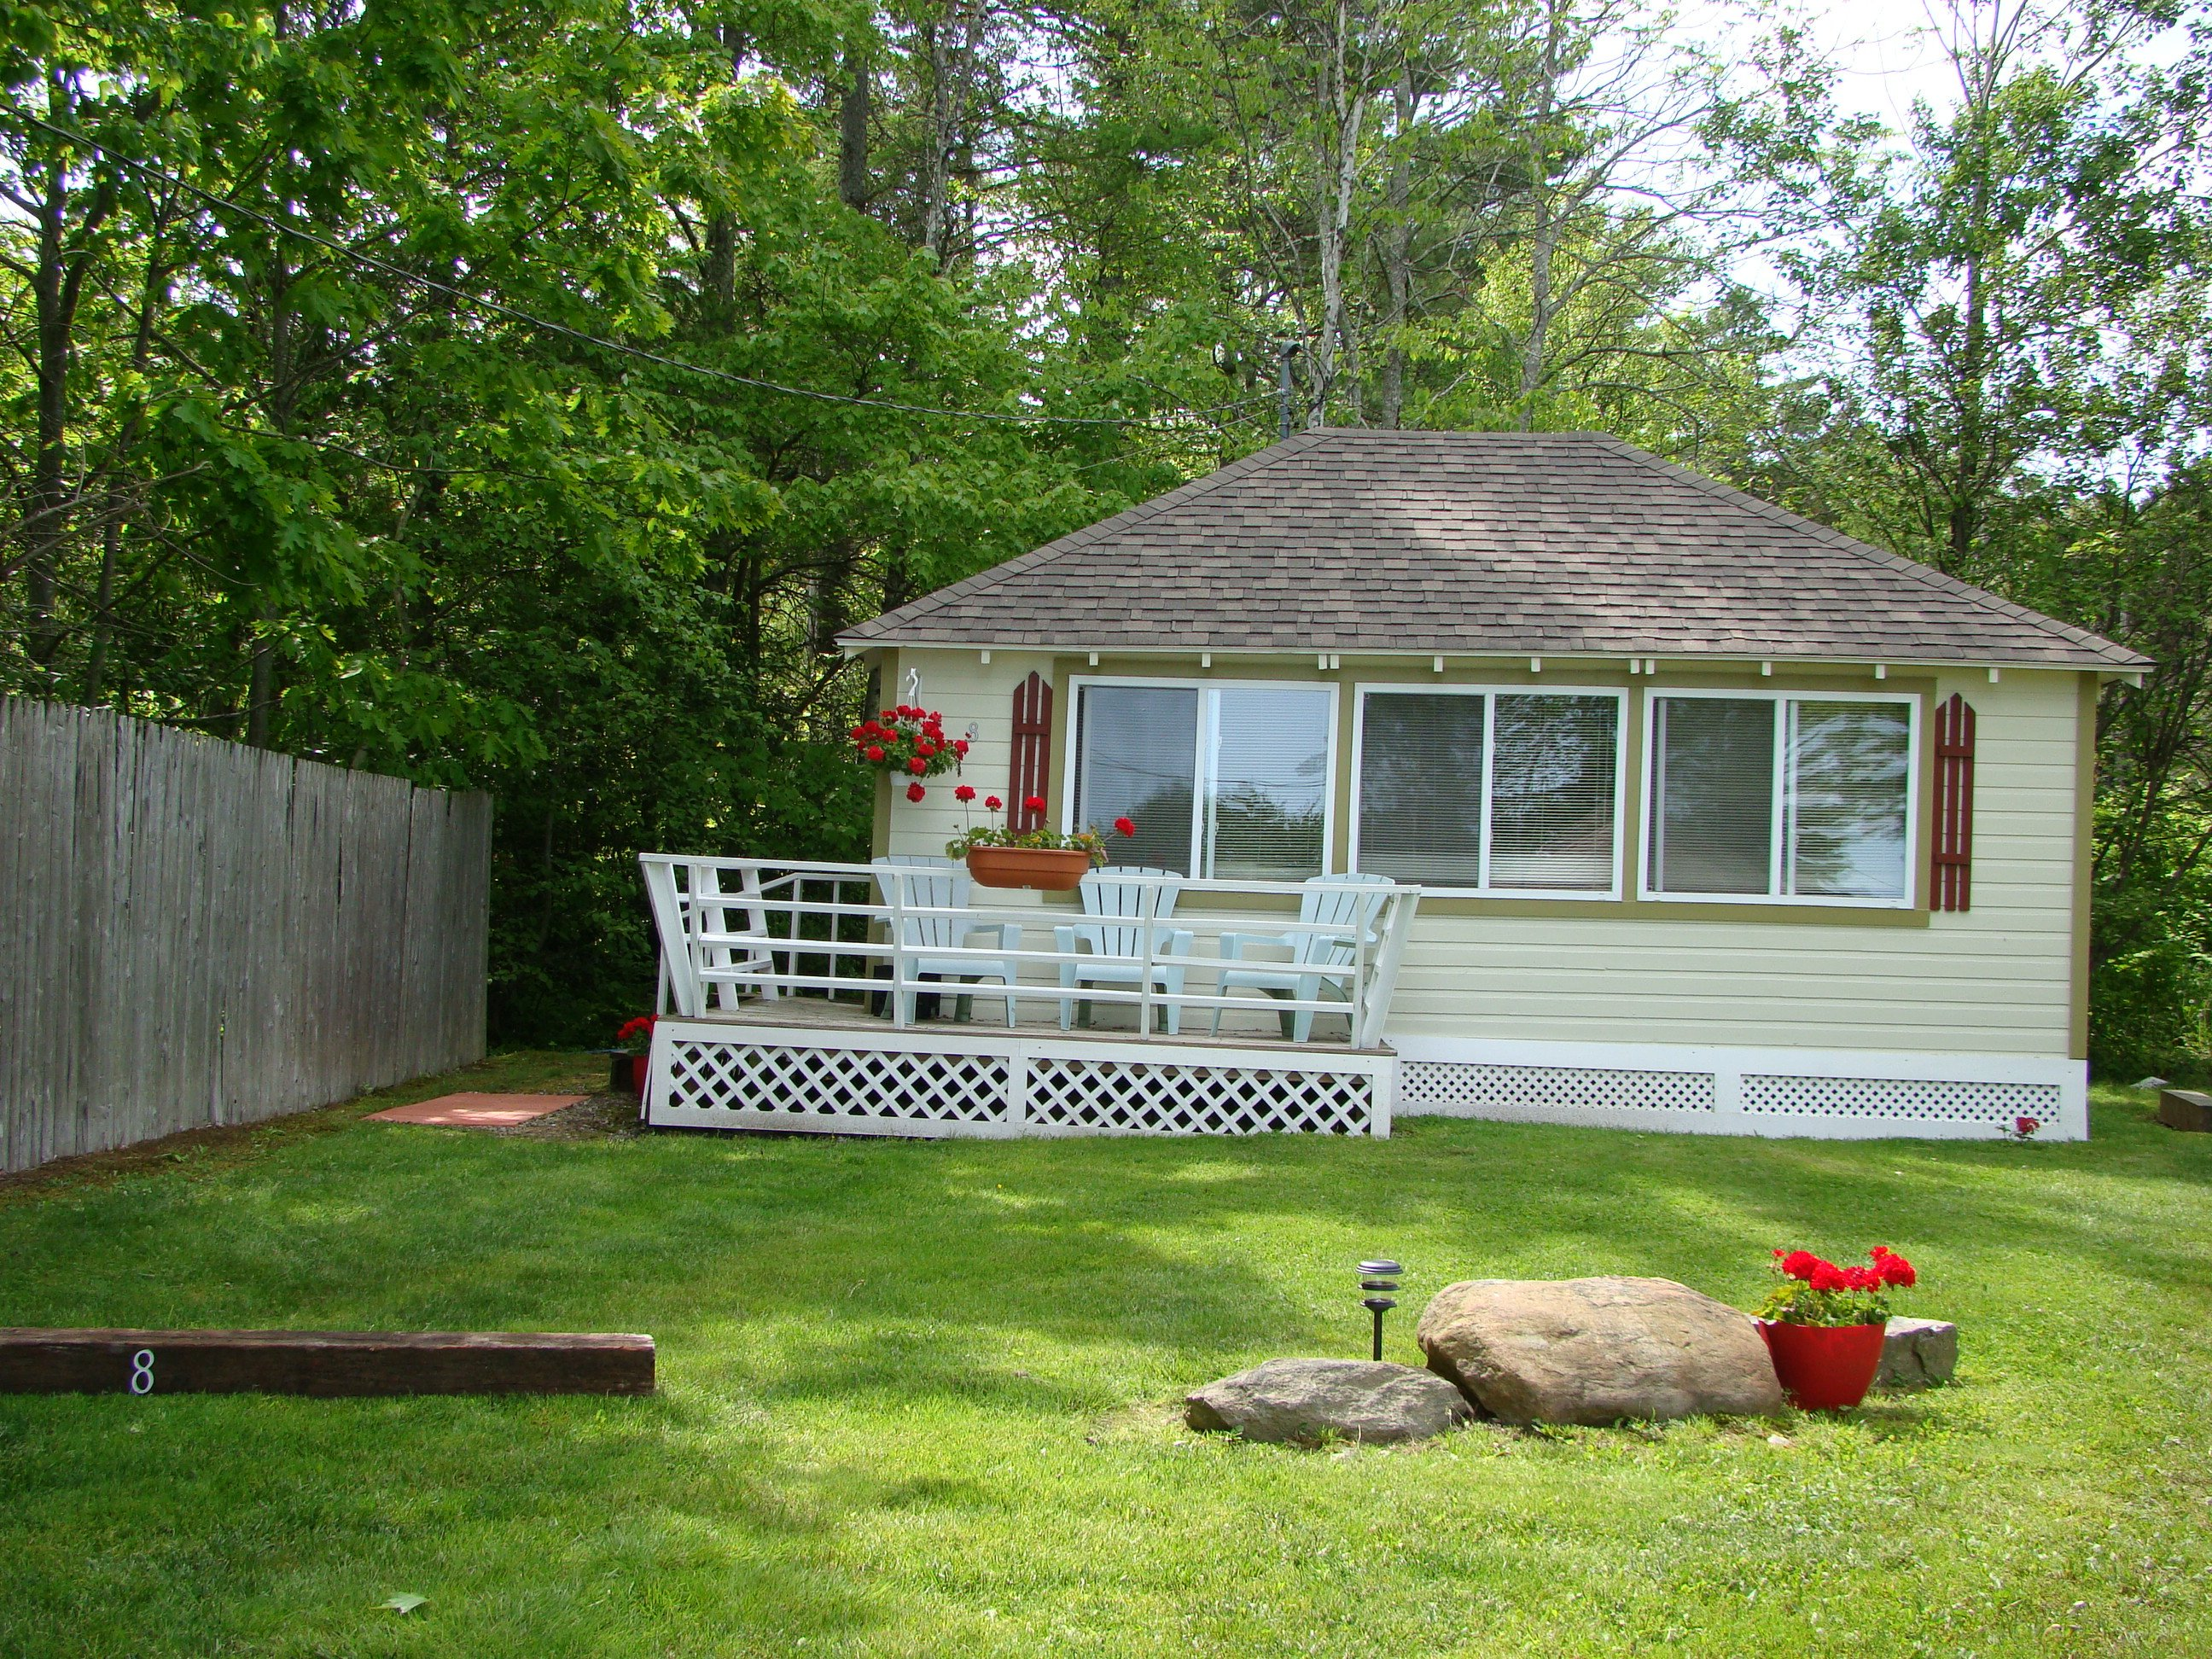 Cottage 8 - two bedroom cottage with full bed and bunk beds, kitchenette, deck